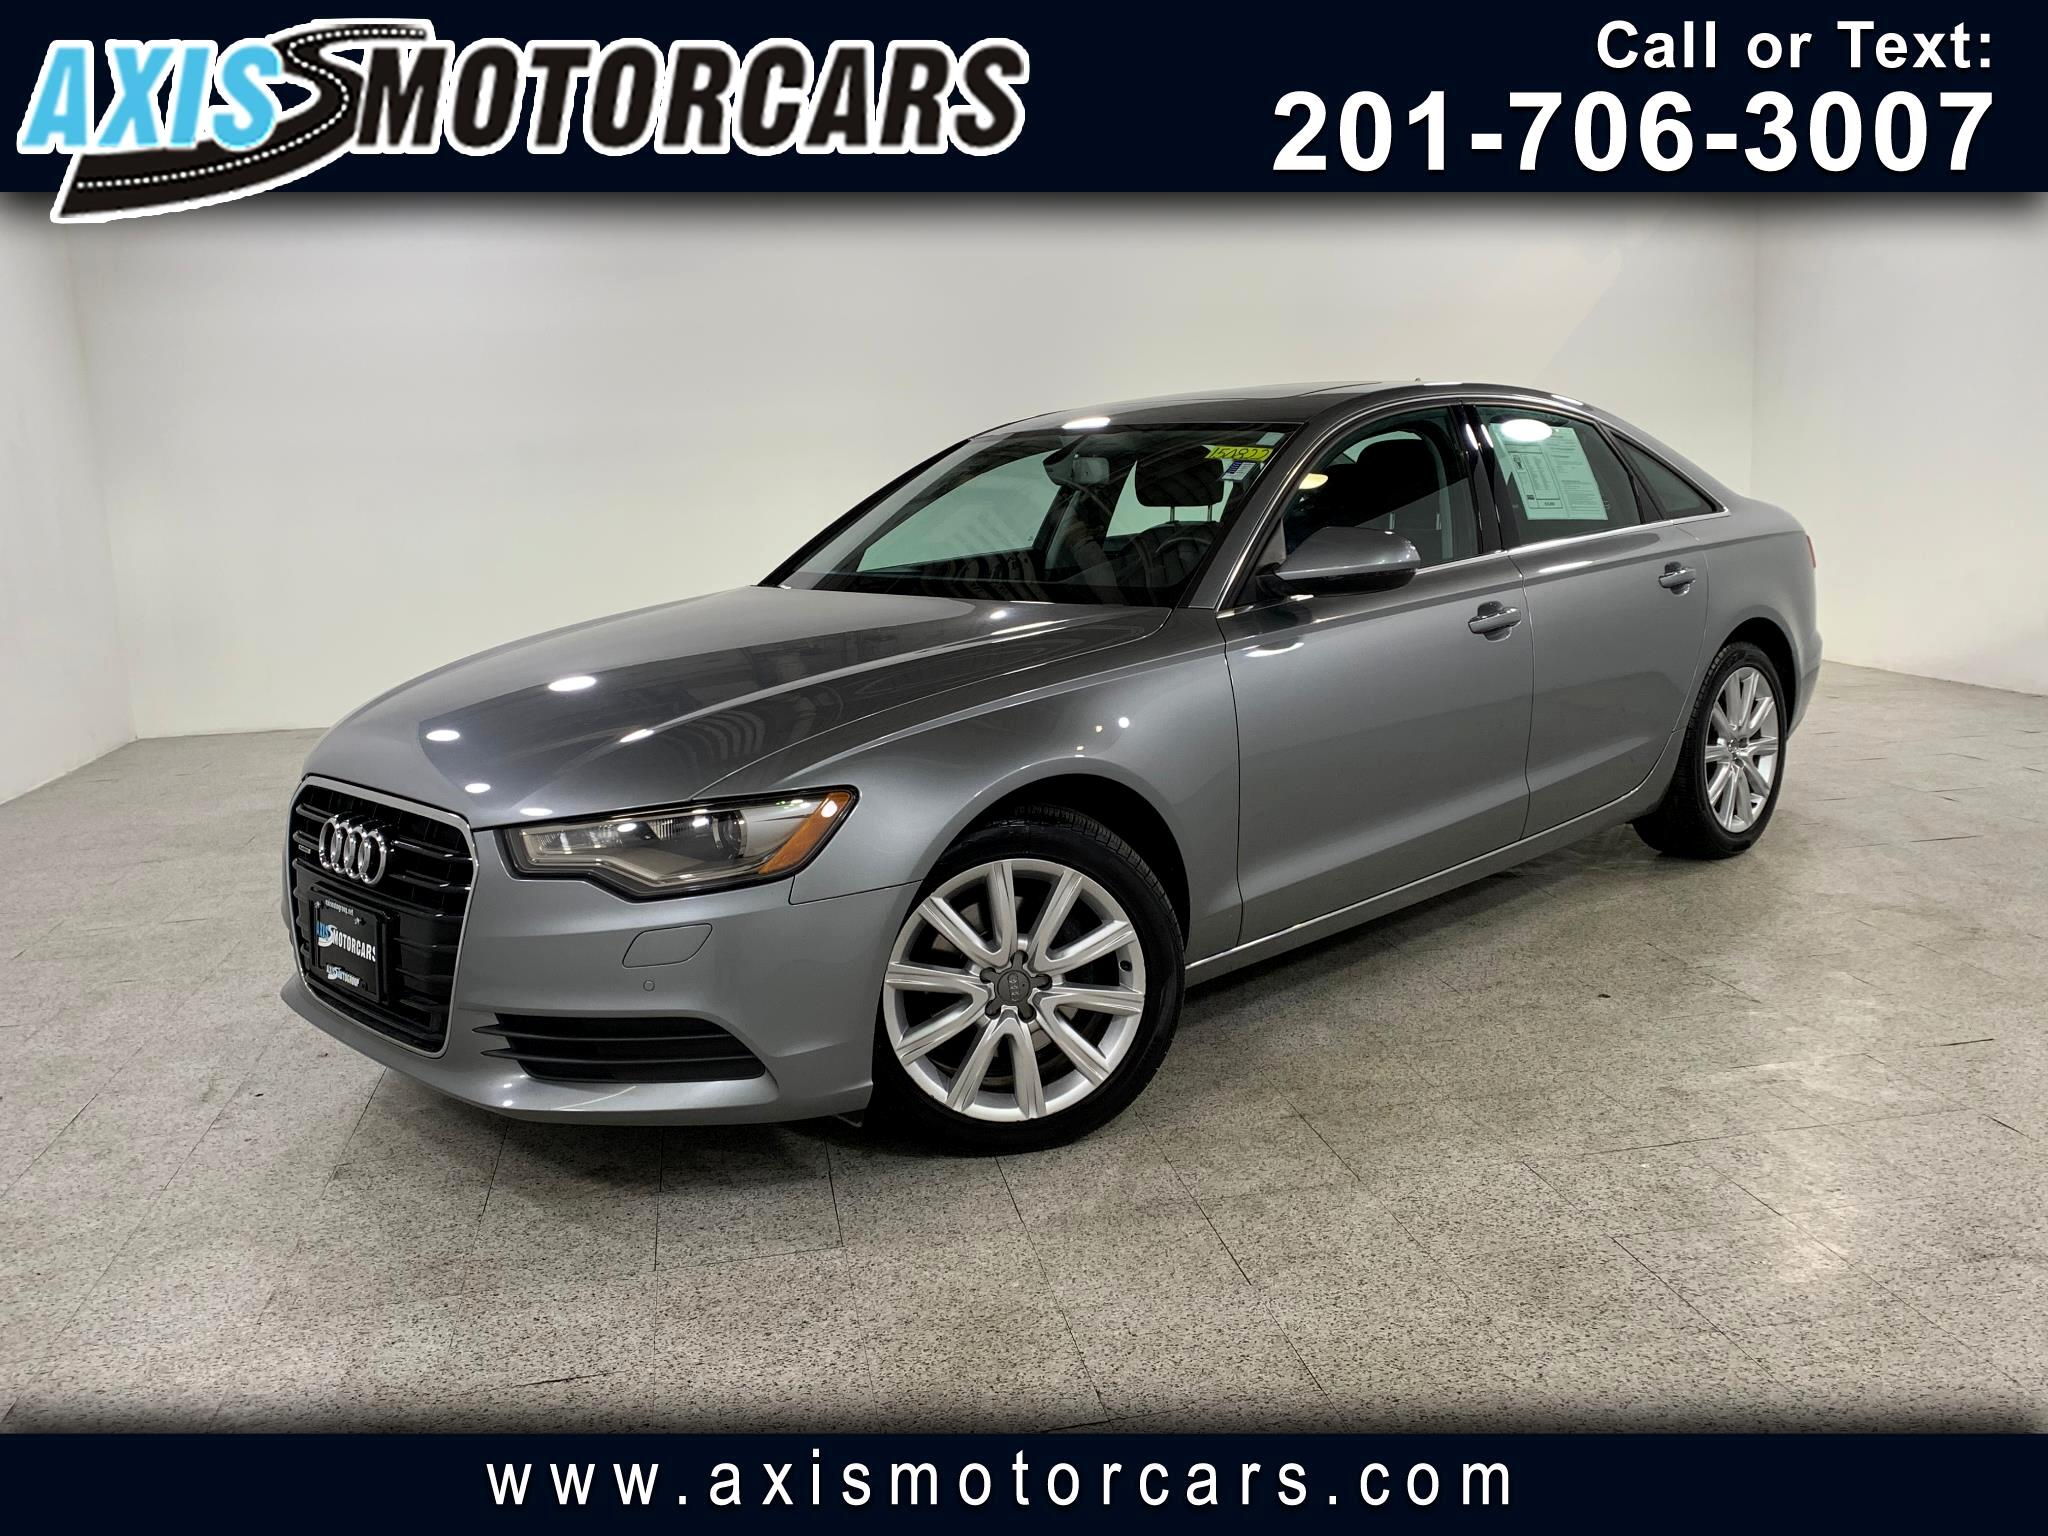 2013 Audi A6 Premium Plus w/Navigation Bakup Camera Sunroof